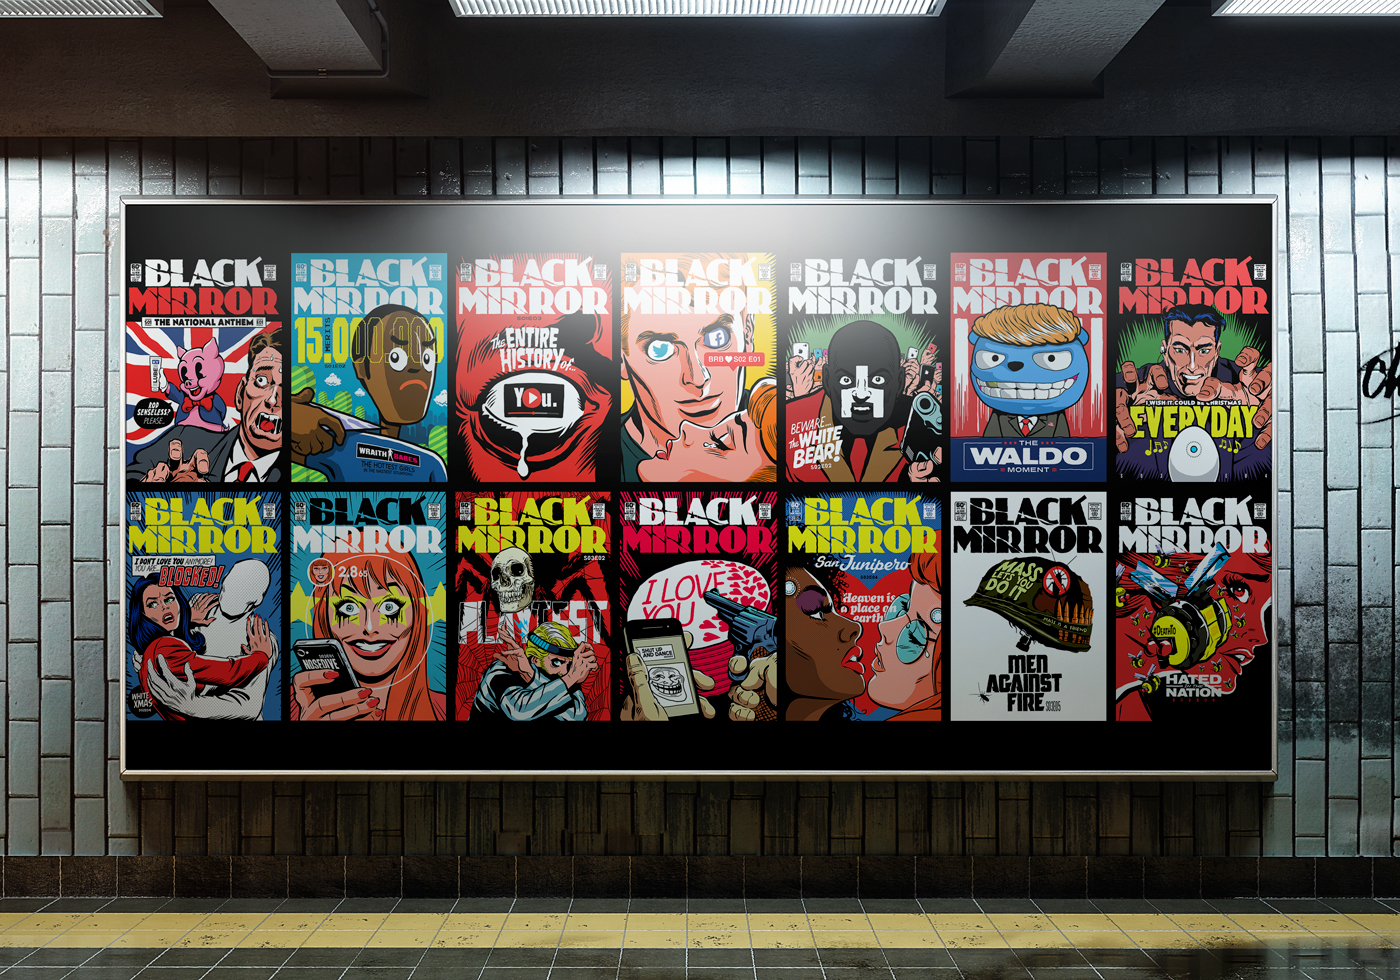 Comic-Sans Horror: Butcher Billy, a Brazilian artist and creator of contemporary art has his work on display- vintage comic book style cover art designed in caricature of each episode of Black Mirror. The art itself is difficult to depict without having watched the episodes, although even without context were quite intriguing.